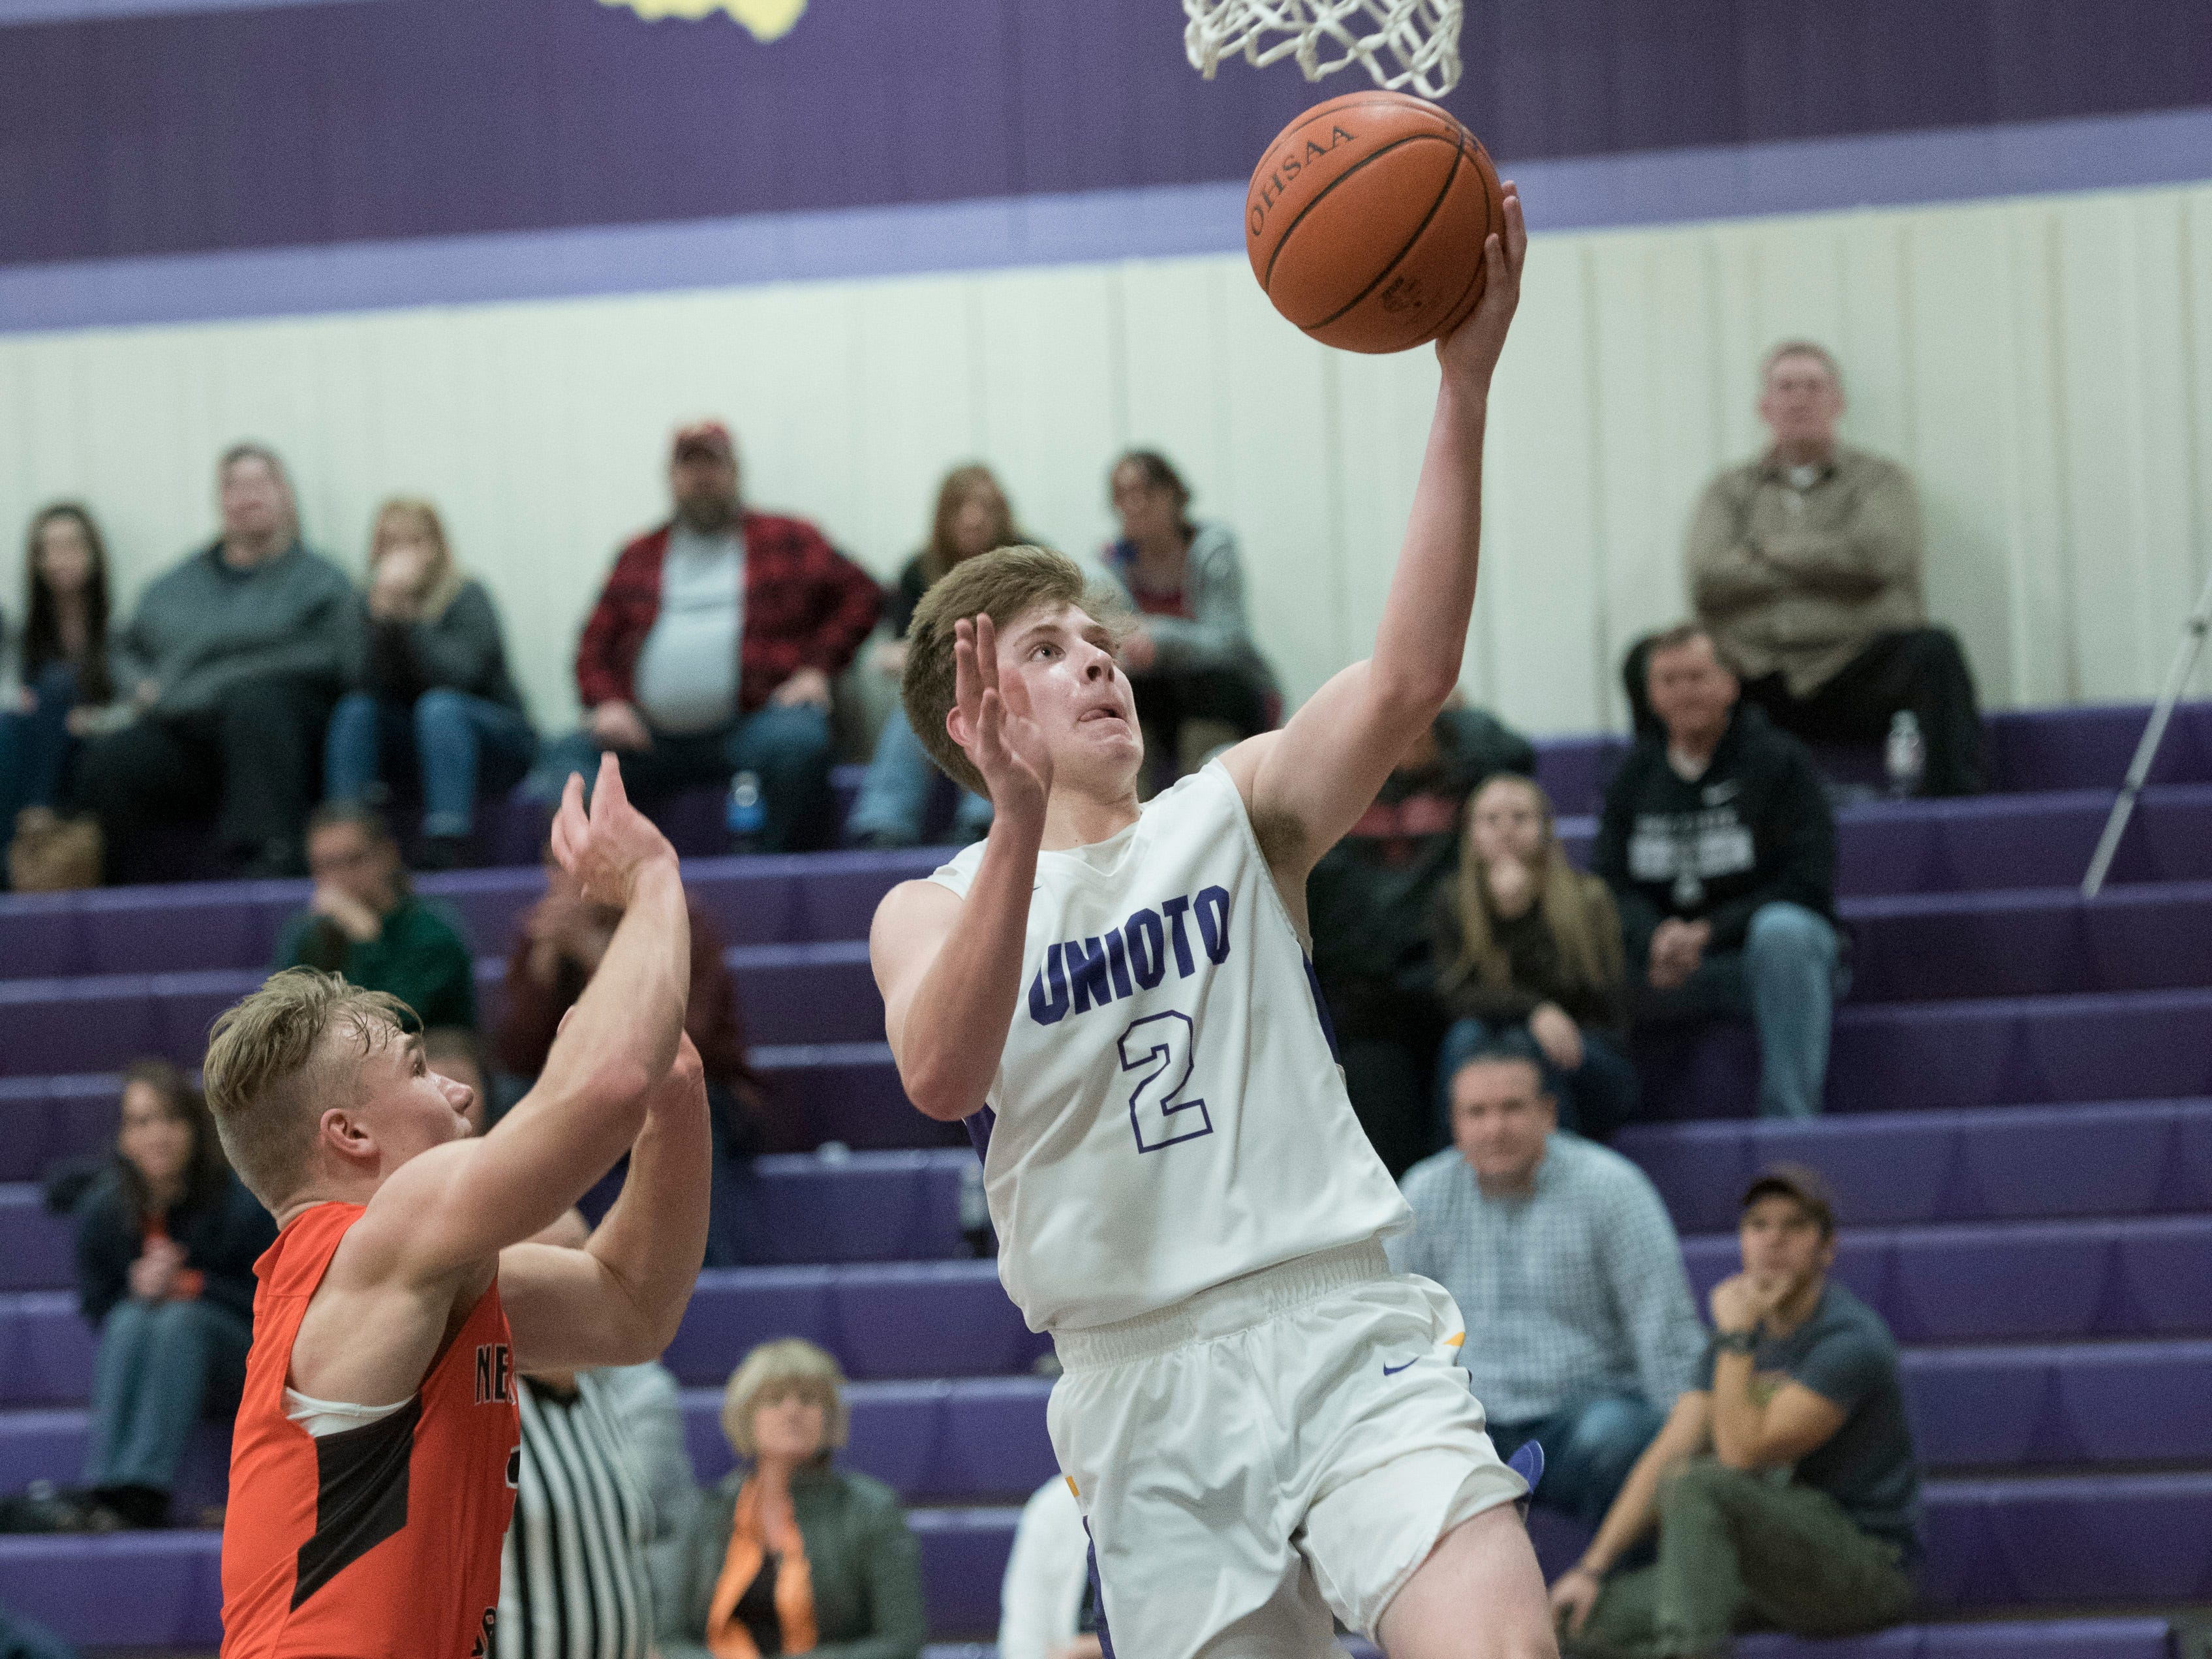 Unioto's Cameron Debord scores against Nelsonville-York Wednesday night at Unioto High School. Debord helped to clench Unioto's 66-53 win by scoring 17 points for the night.